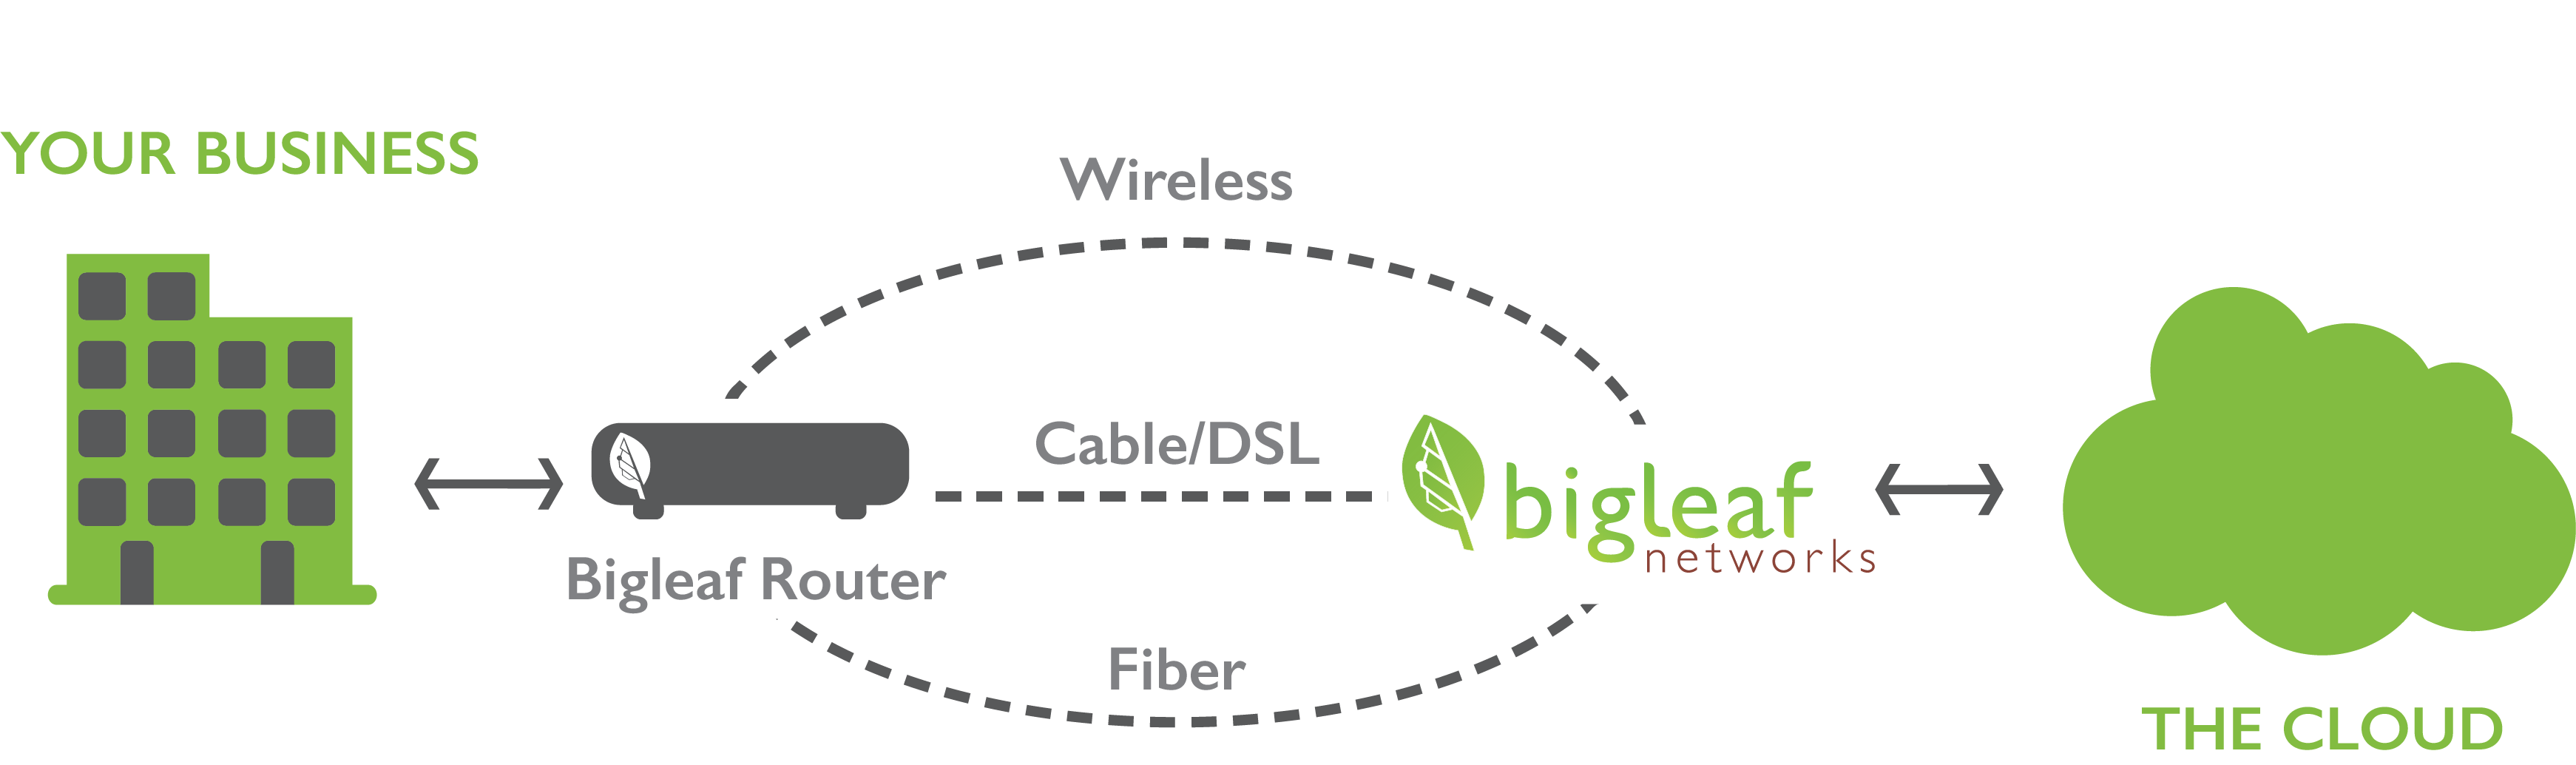 Matrix Networks partners with Bigleaf Networks for SD-WAN